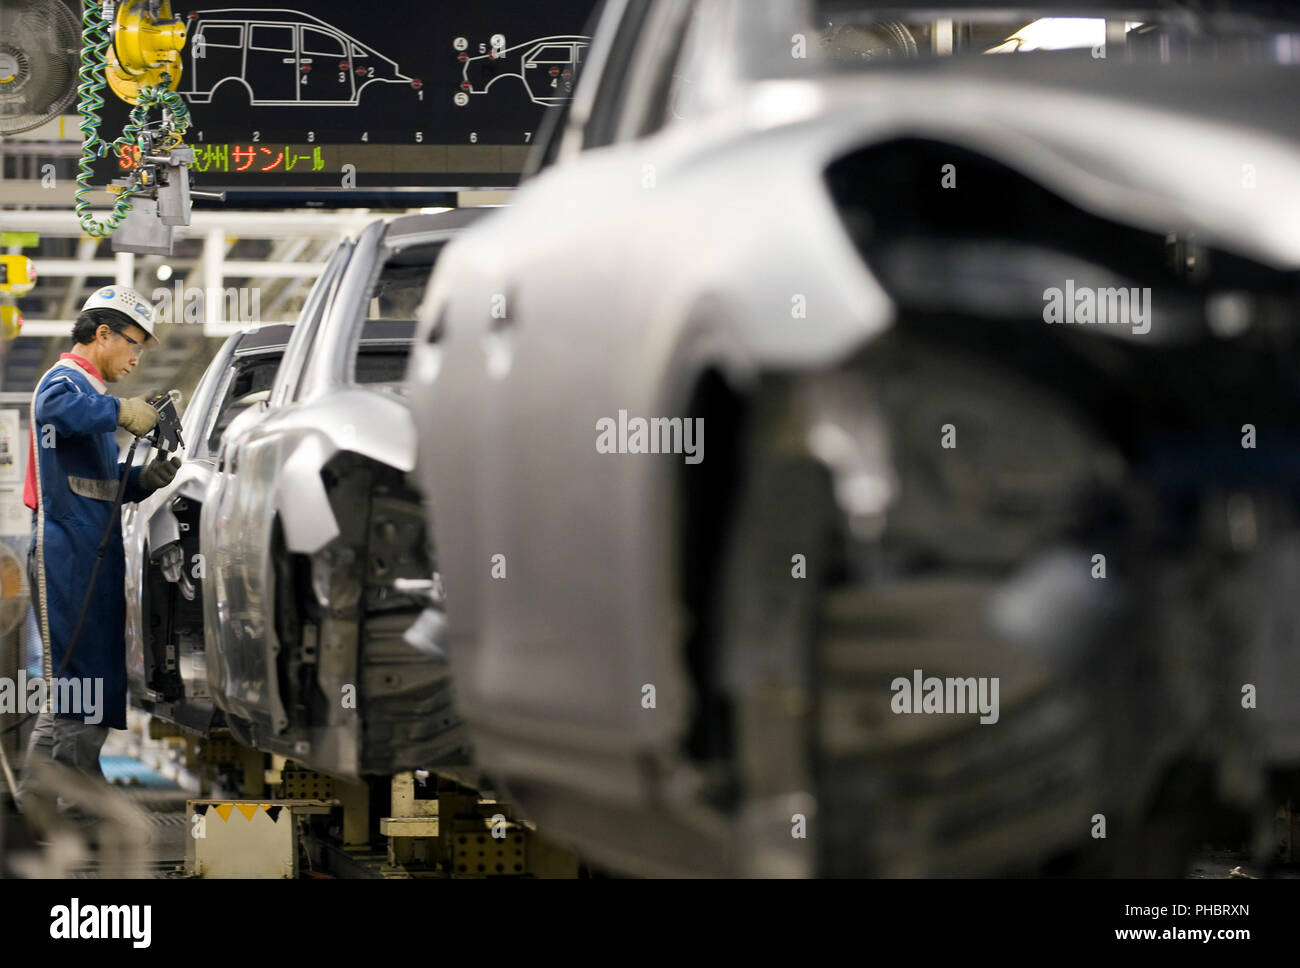 Ein Arbeitnehmer arbeitet an einem Fahrzeug bei Nissan Motor Co. s Montagewerk in Tochigi, Japan am Donnerstag, den 12. November 2009. Fotograf: Robert Gilhooly Stockbild